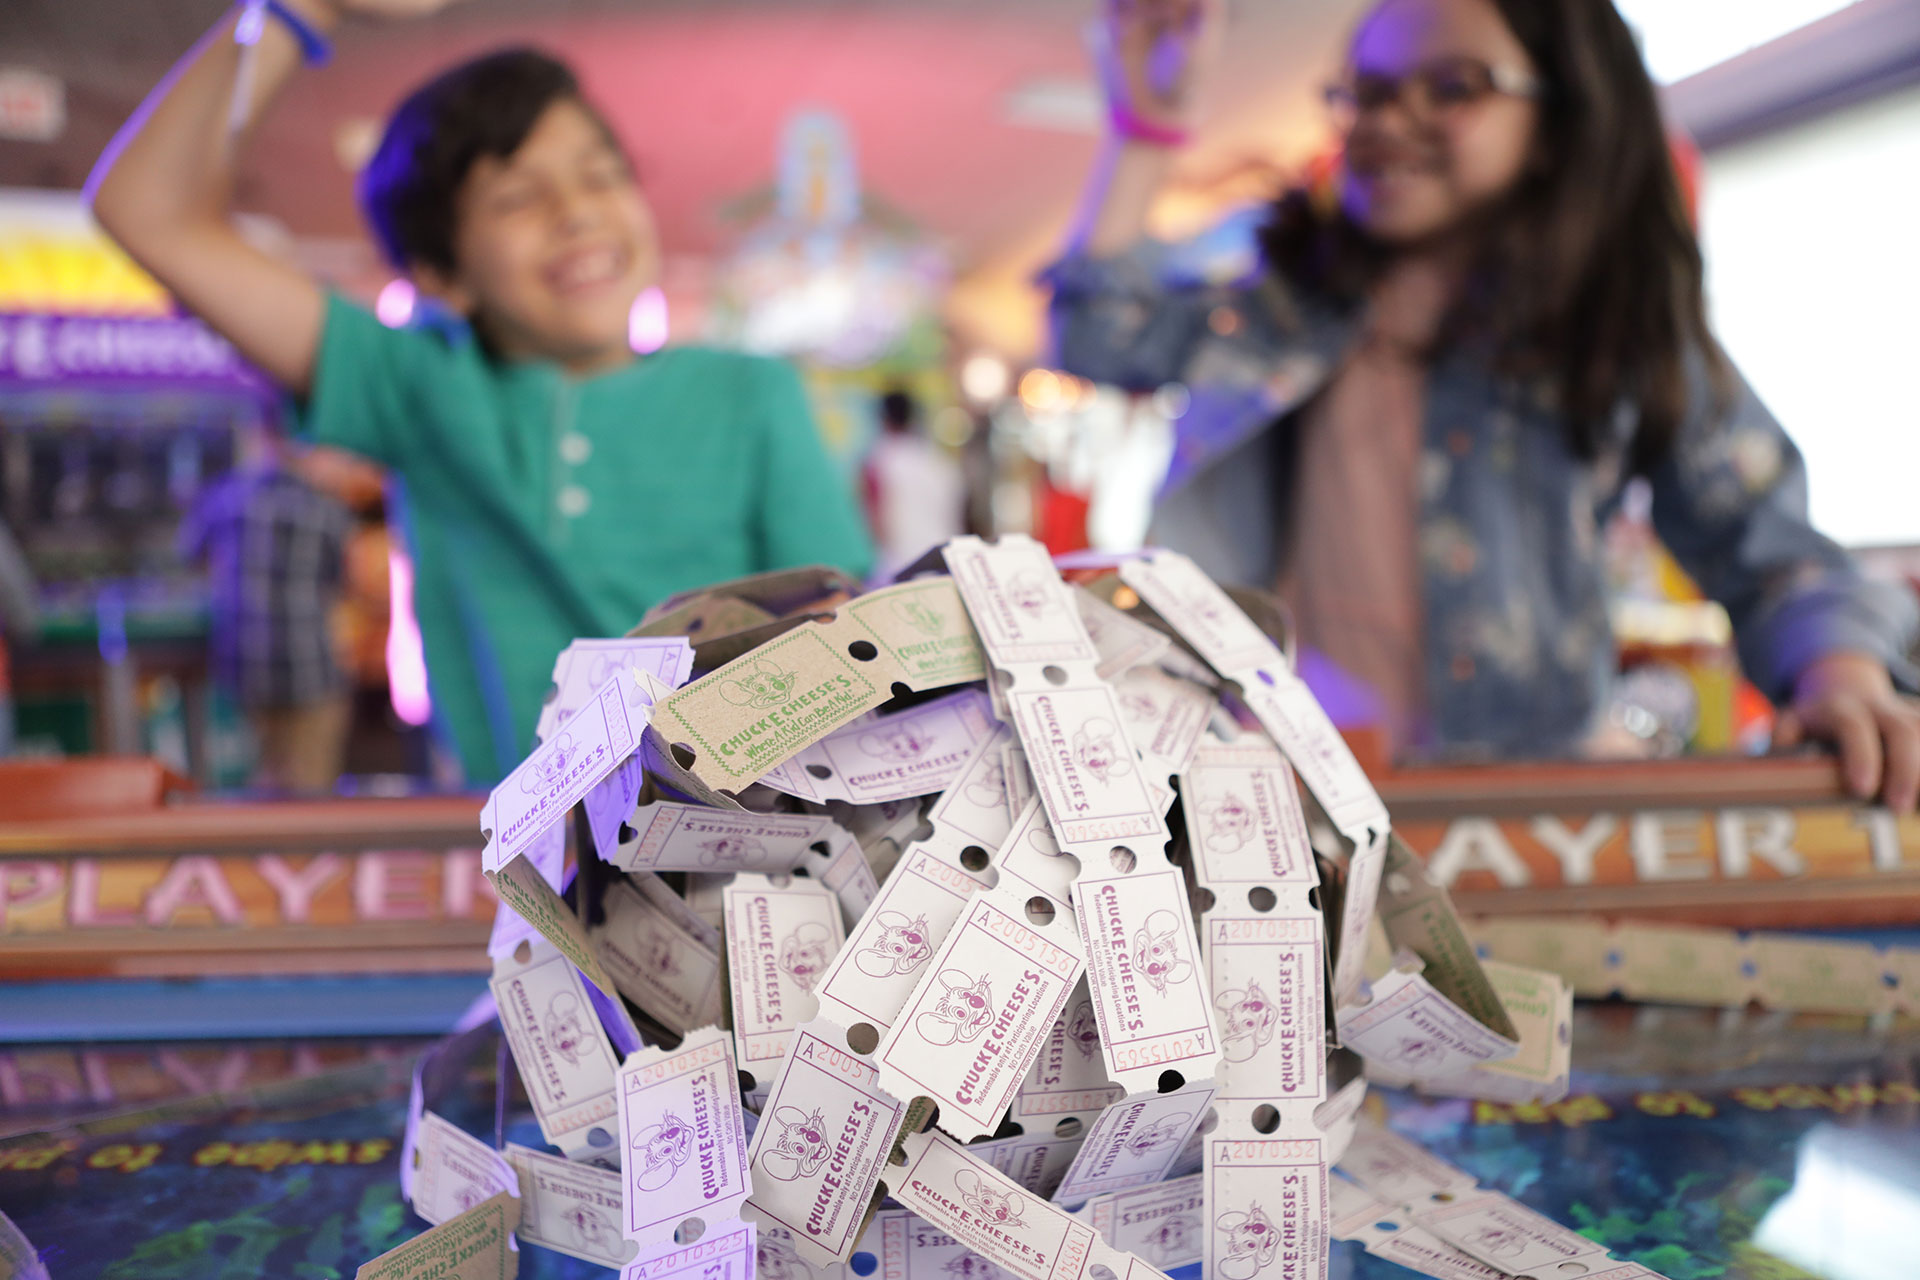 Two kids cheering behind pile of tickets